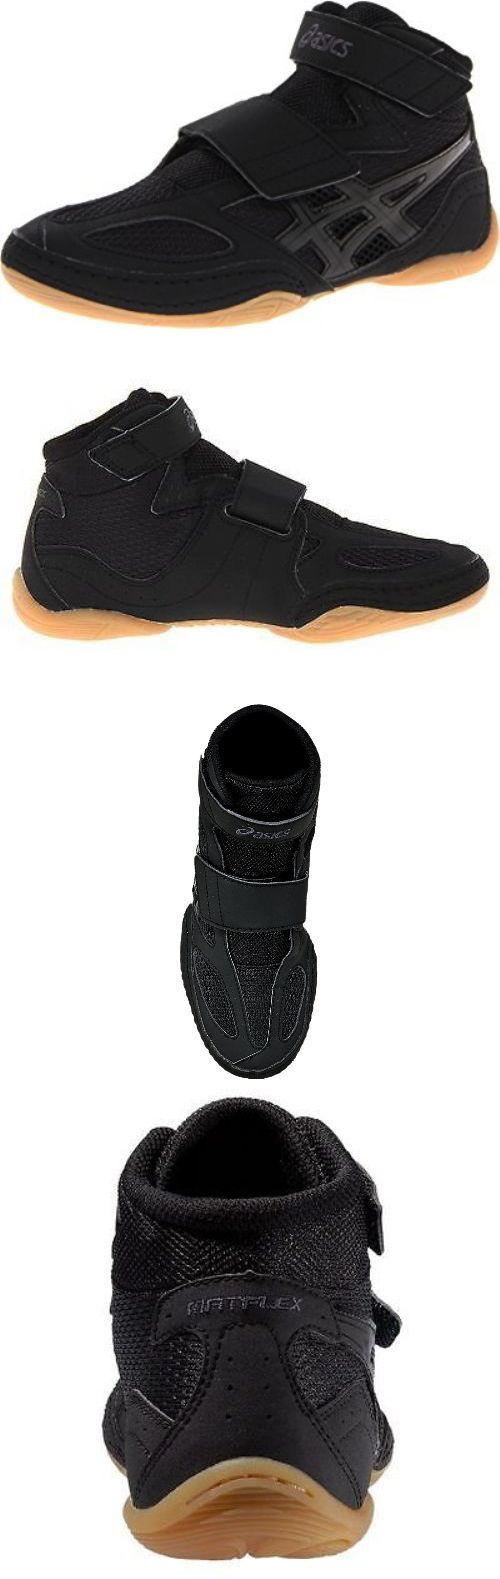 17 best ideas about Youth Wrestling Shoes on Pinterest | Wrestling ...